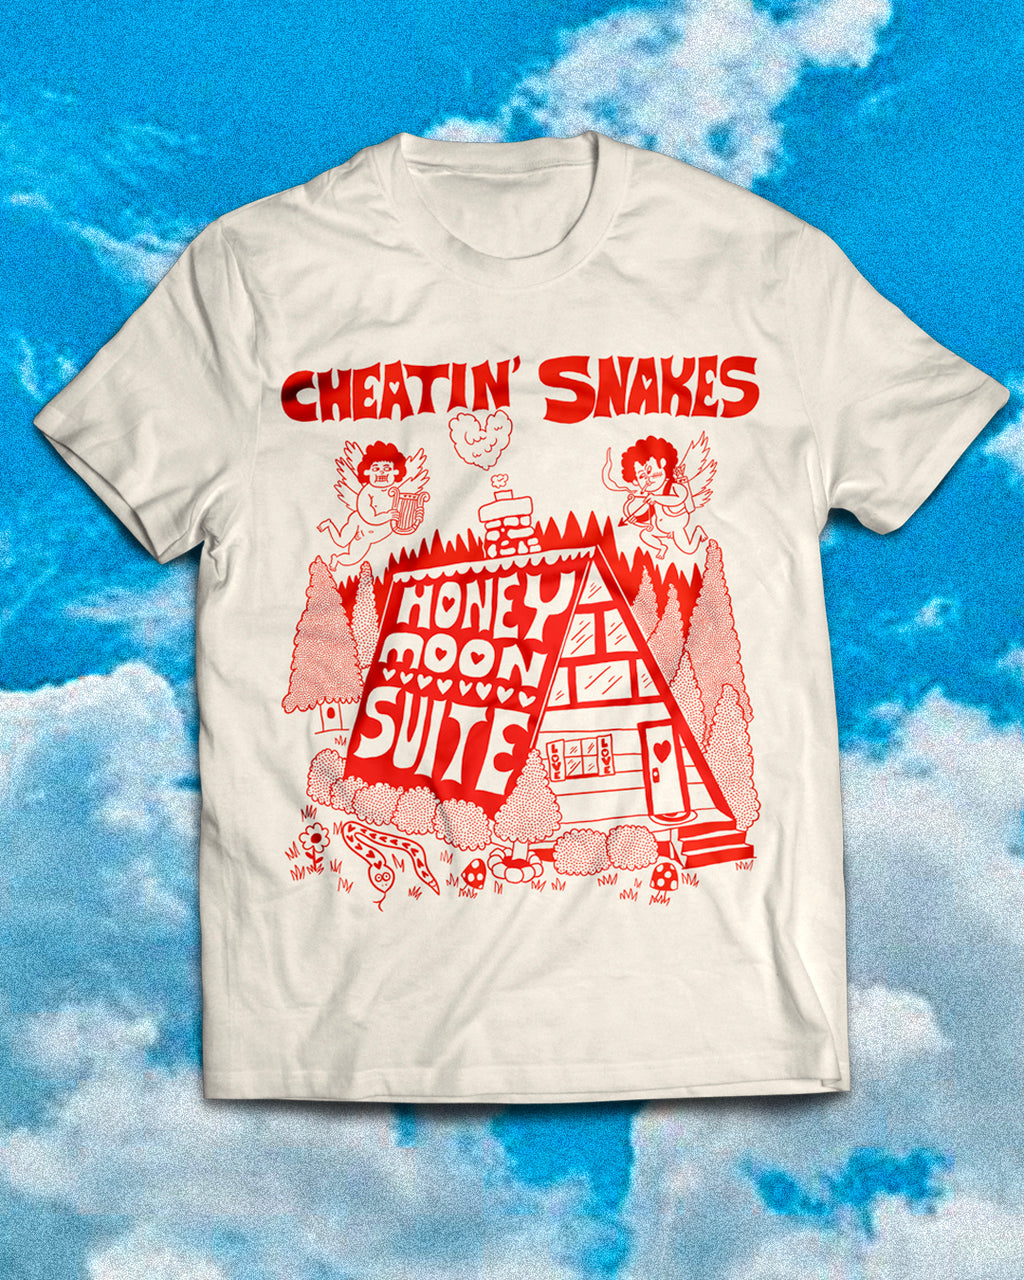 Honeymoon Suite T-shirt